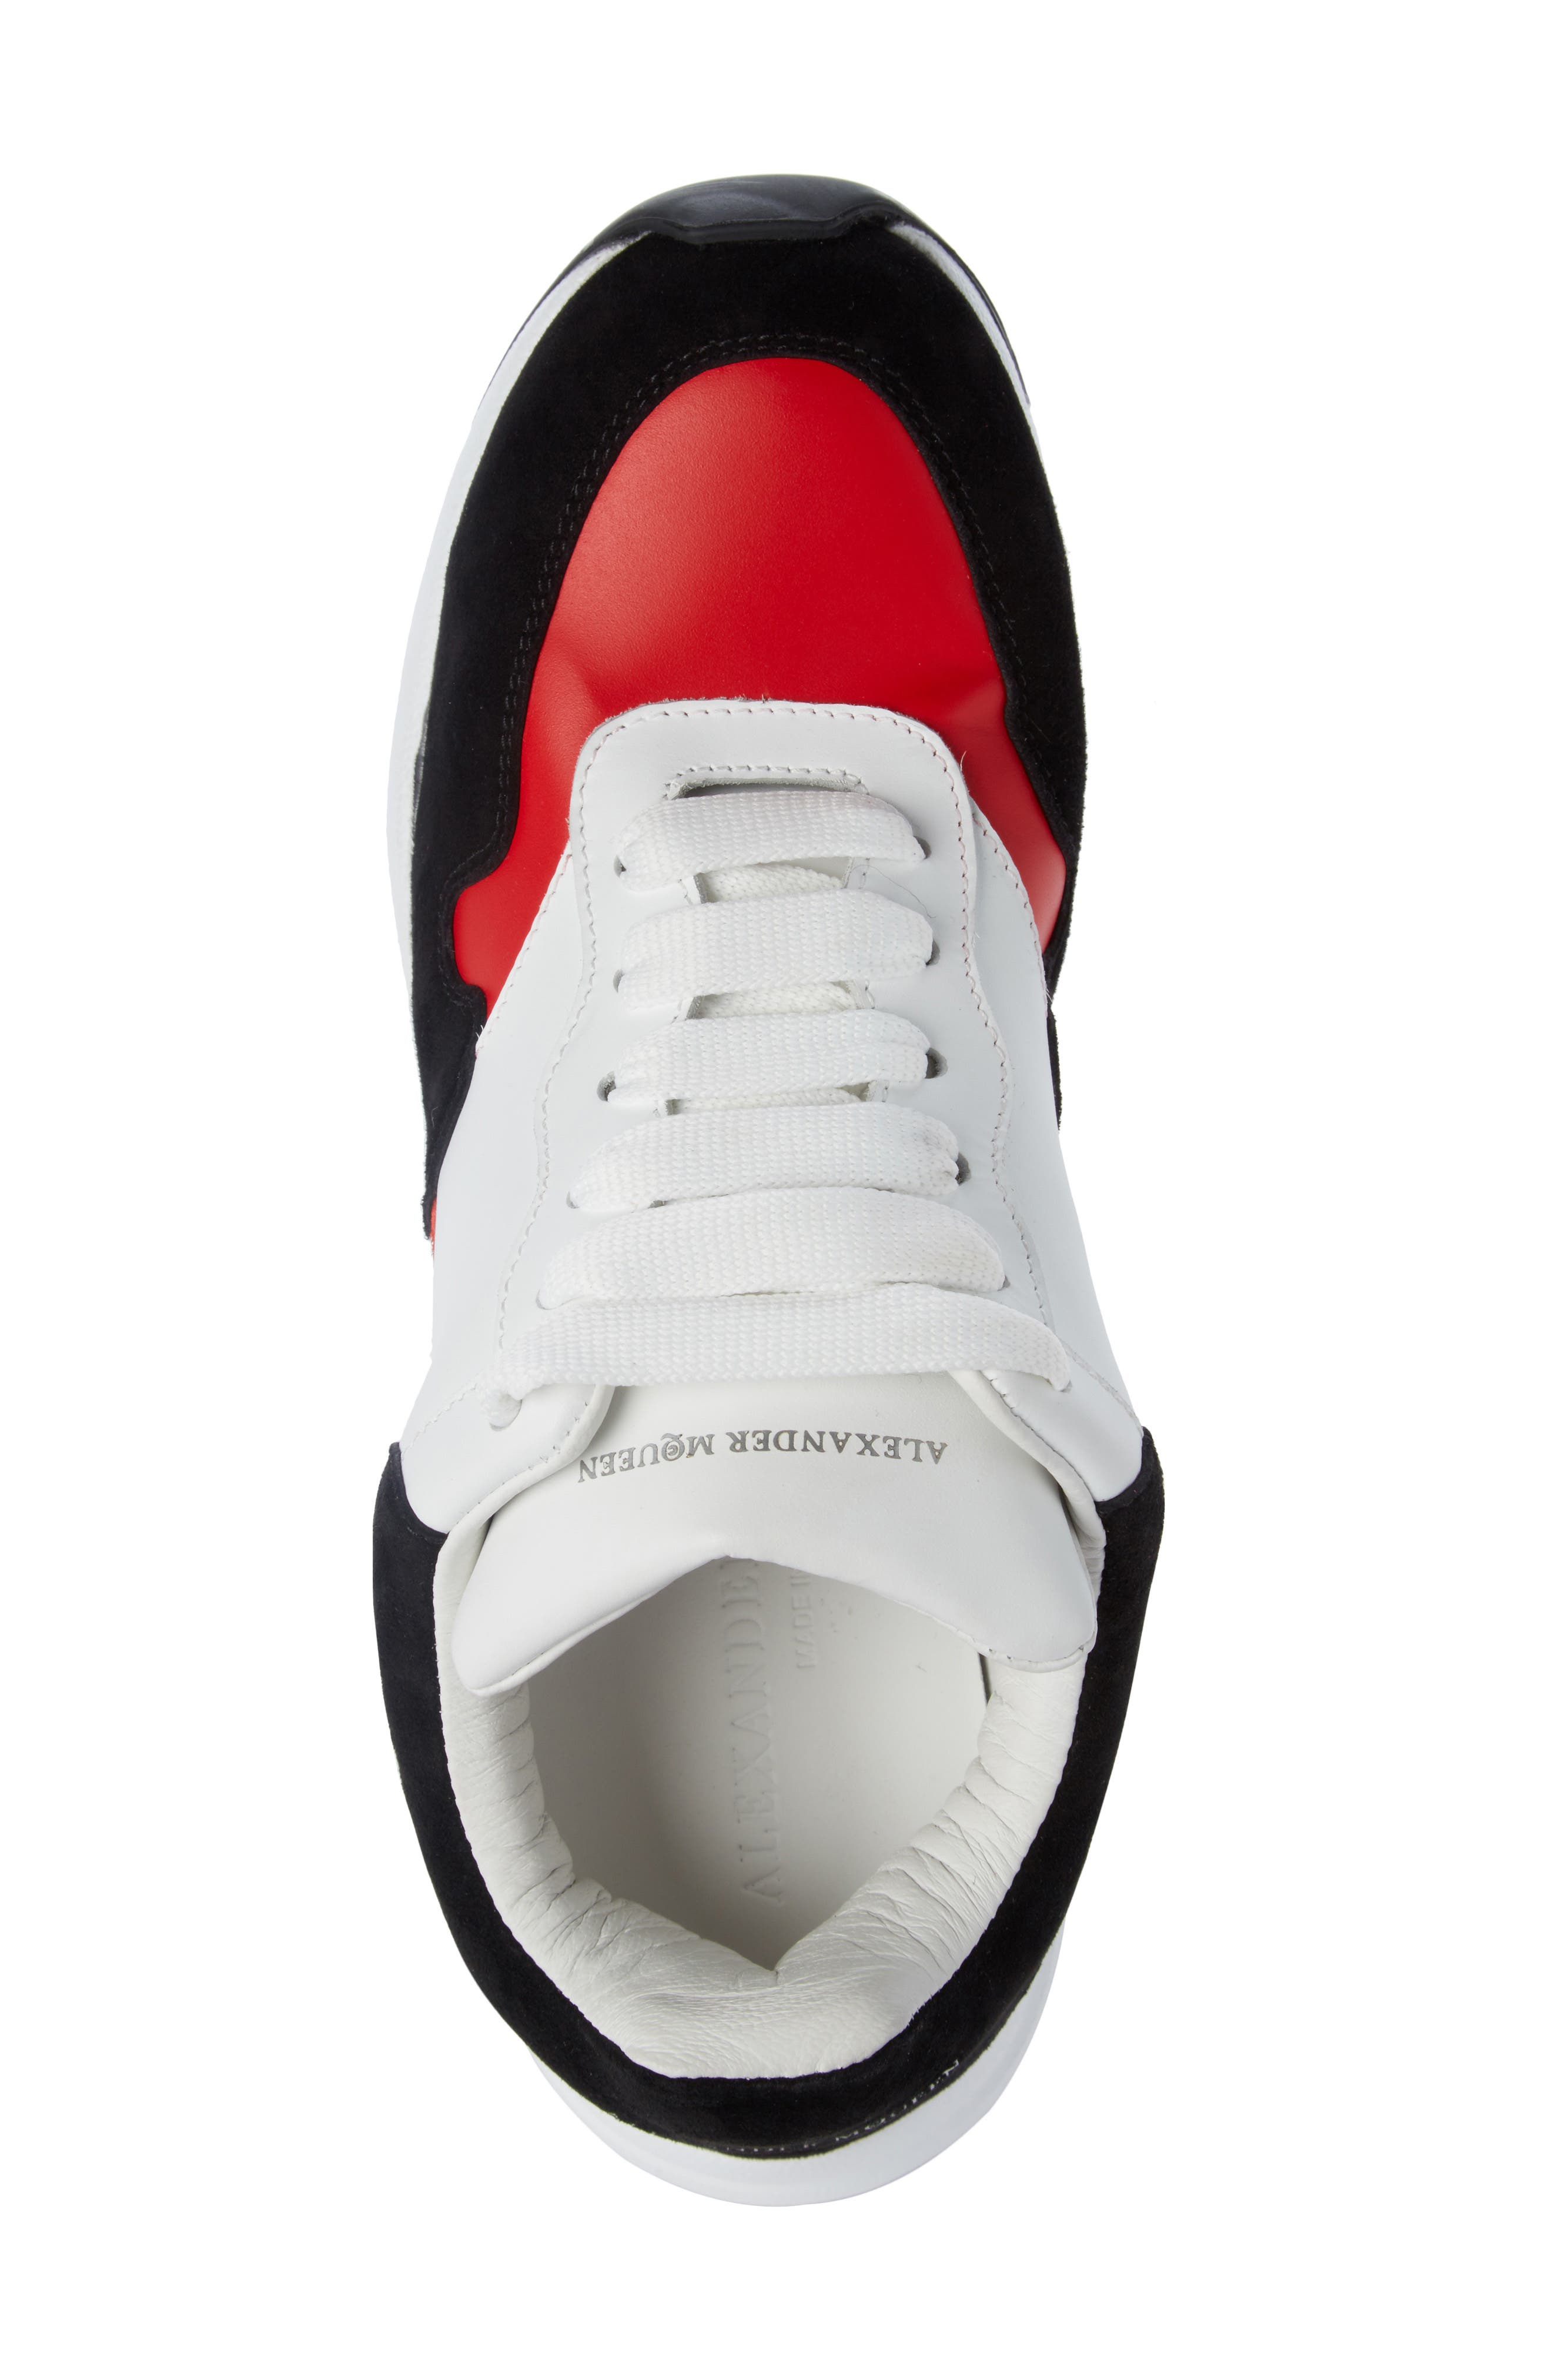 Runner Lace-Up Sneaker,                             Alternate thumbnail 4, color,                             Black/ Red/ White